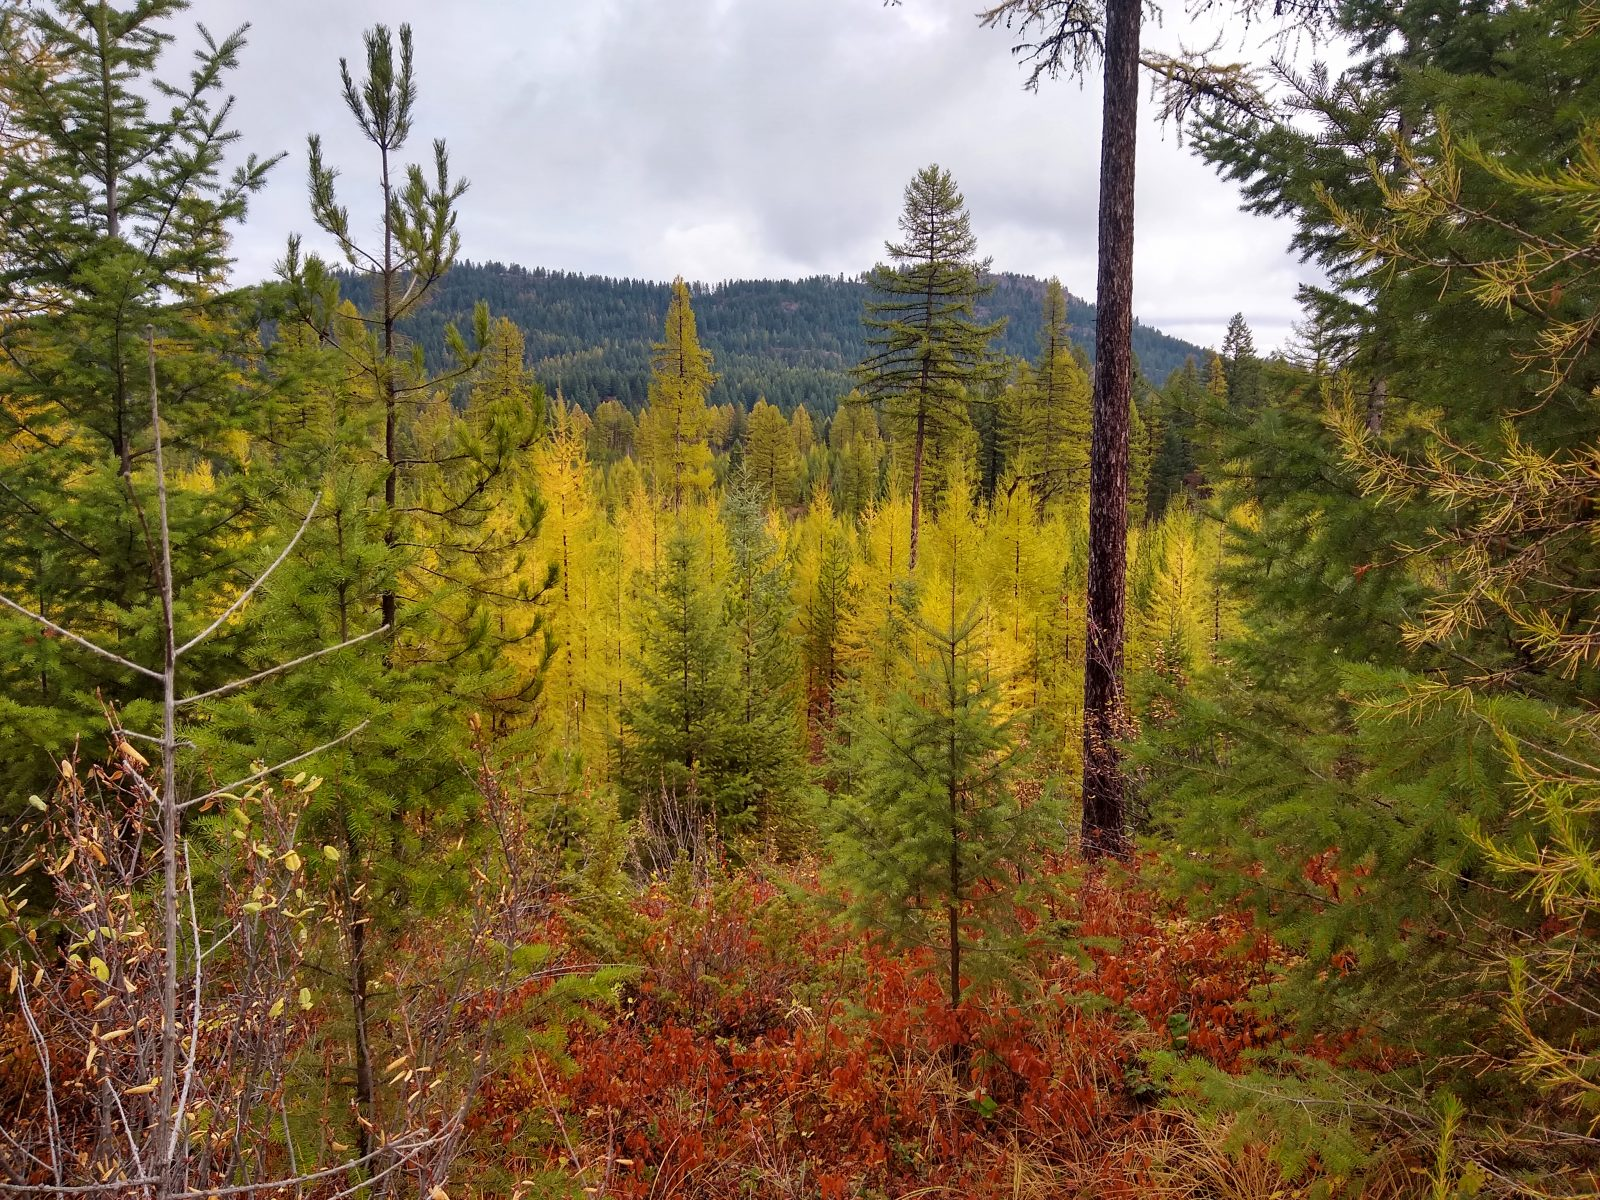 Larch trees turning yellow on the Whitefish Trail